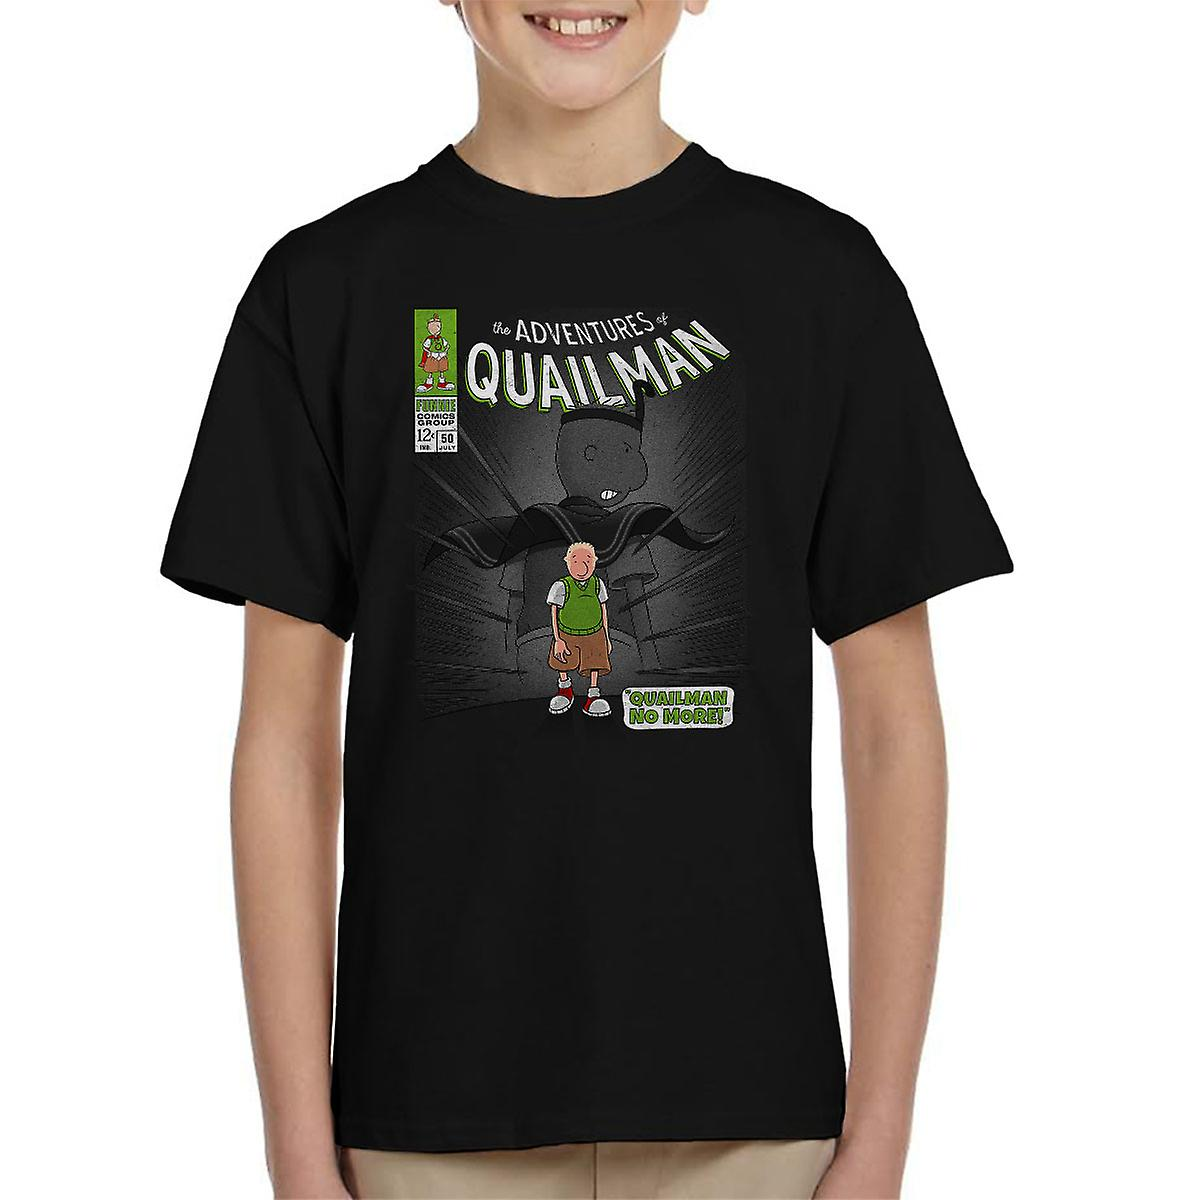 quailman keine weitere doug comic superhelden kinder t shirt fruugo. Black Bedroom Furniture Sets. Home Design Ideas